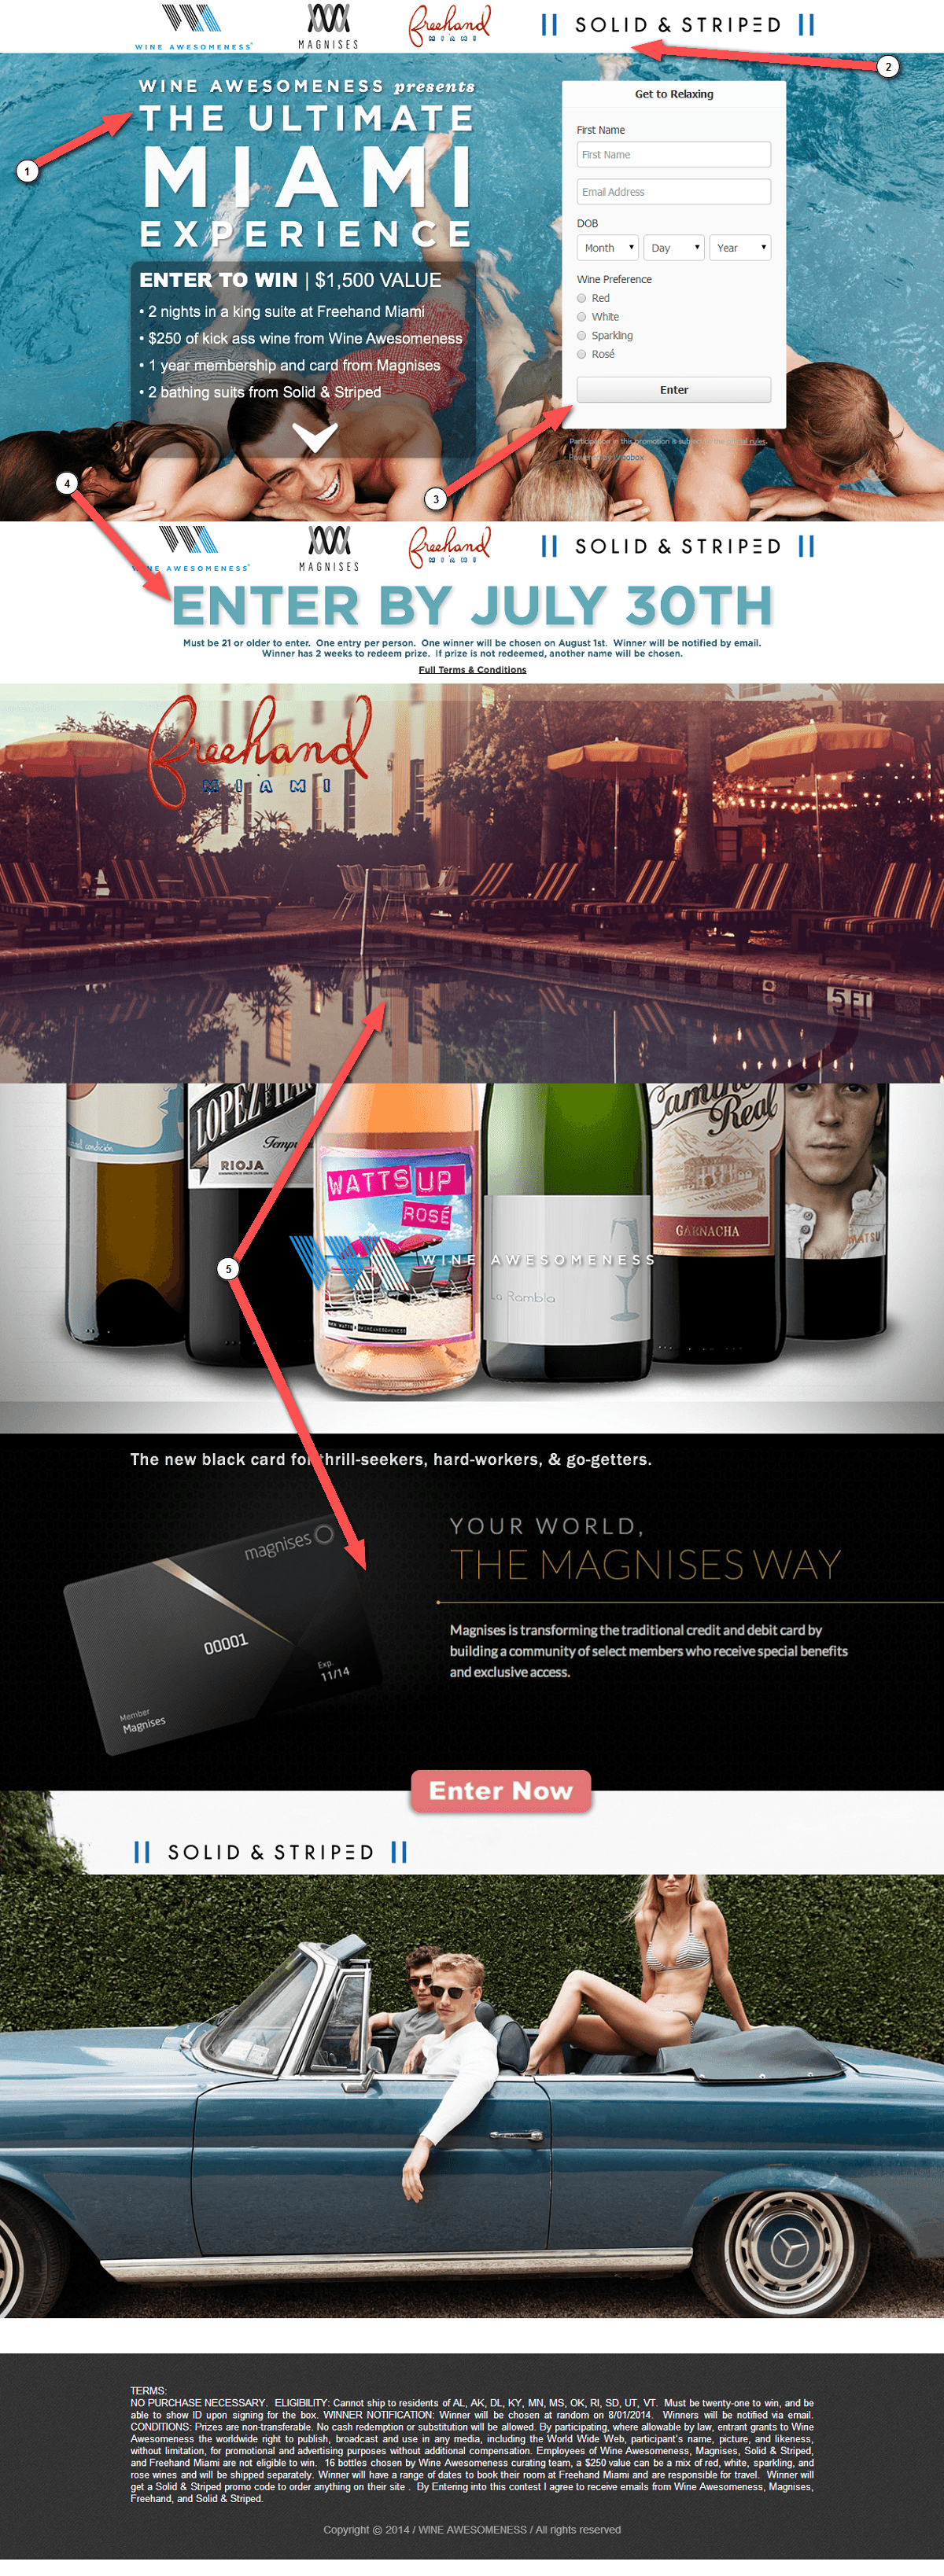 Wine Awesomeness Landing Page Review